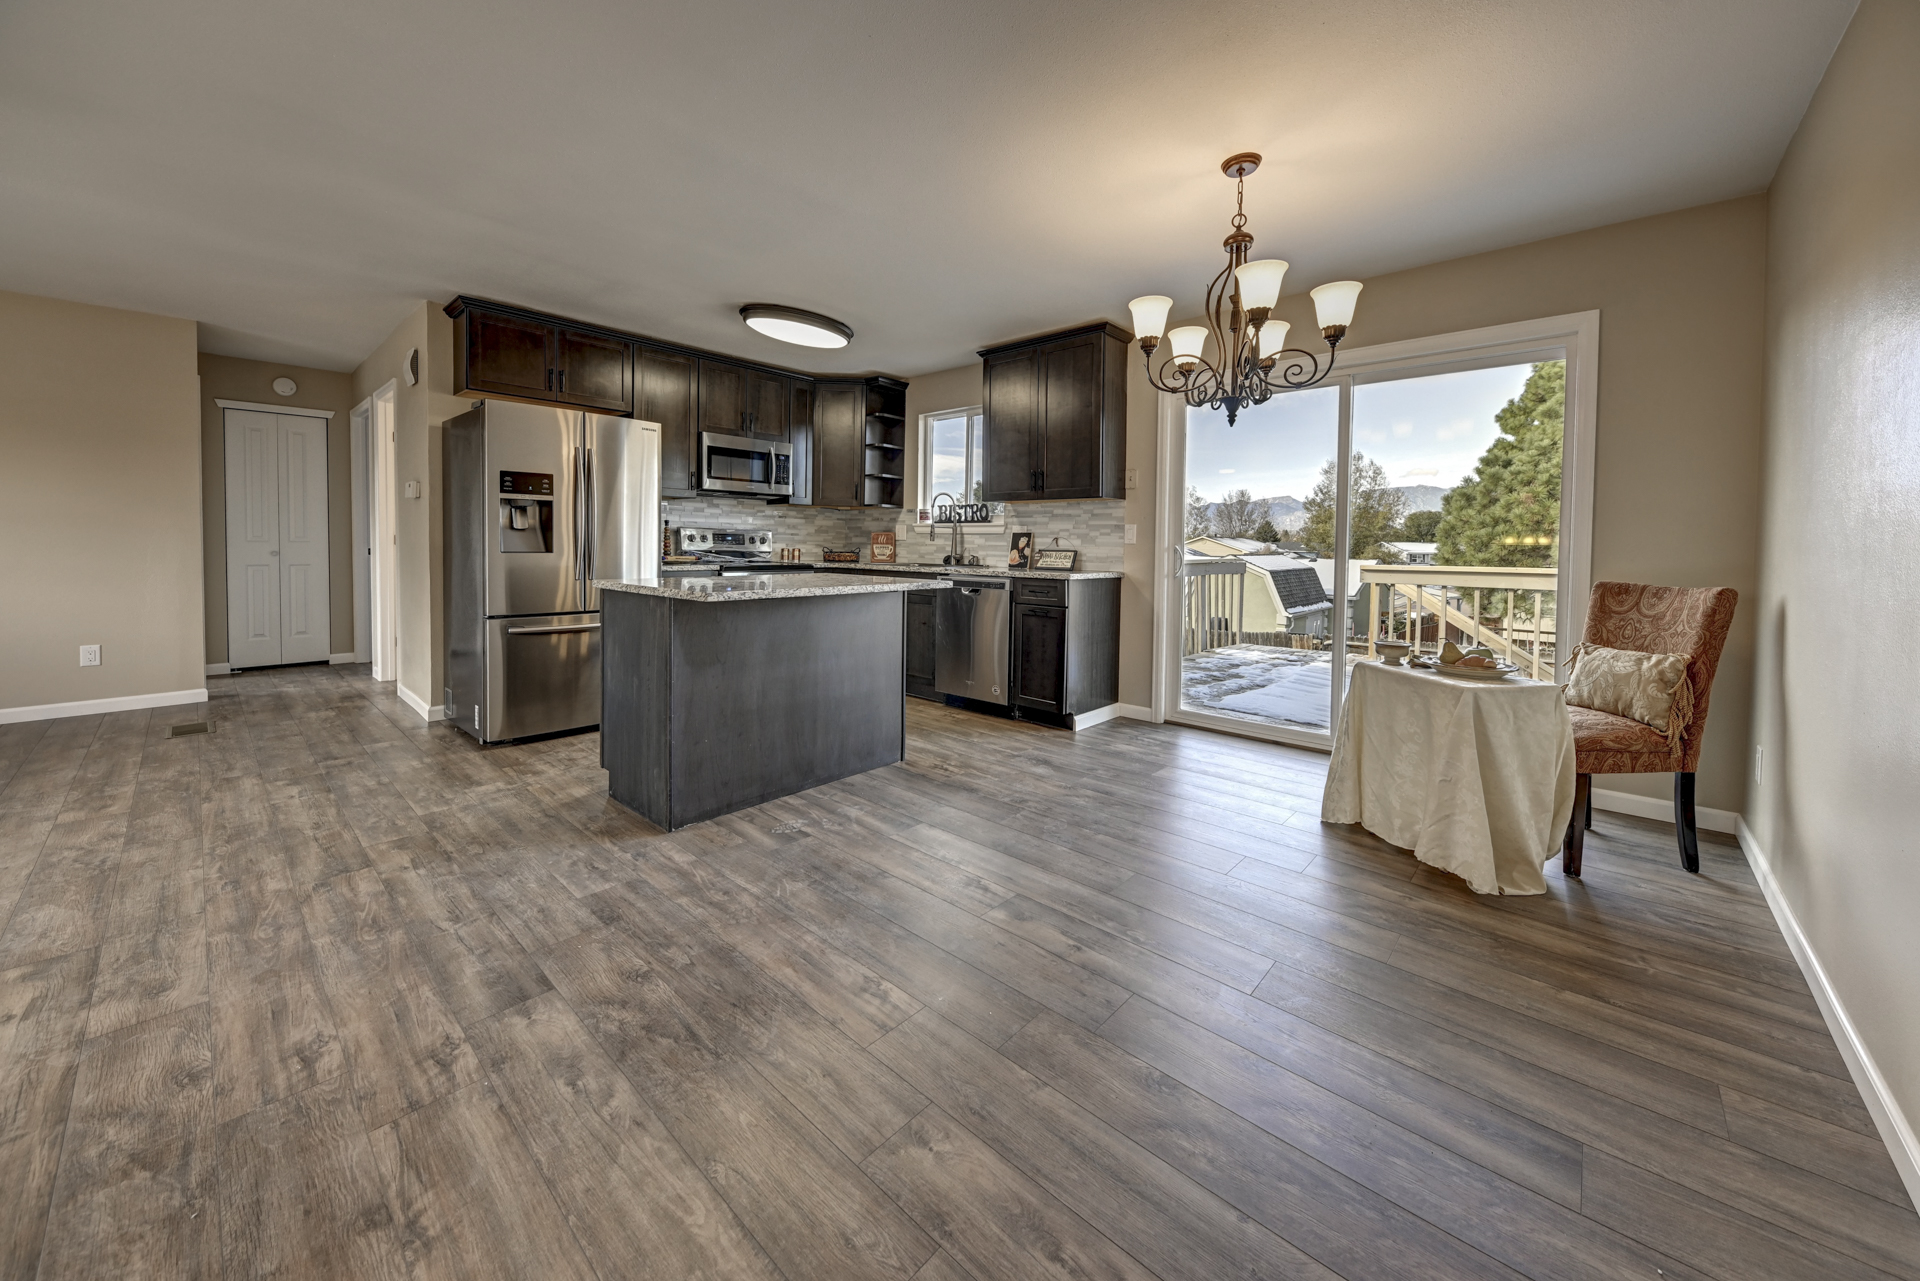 Hunting for a Move In Ready Home?